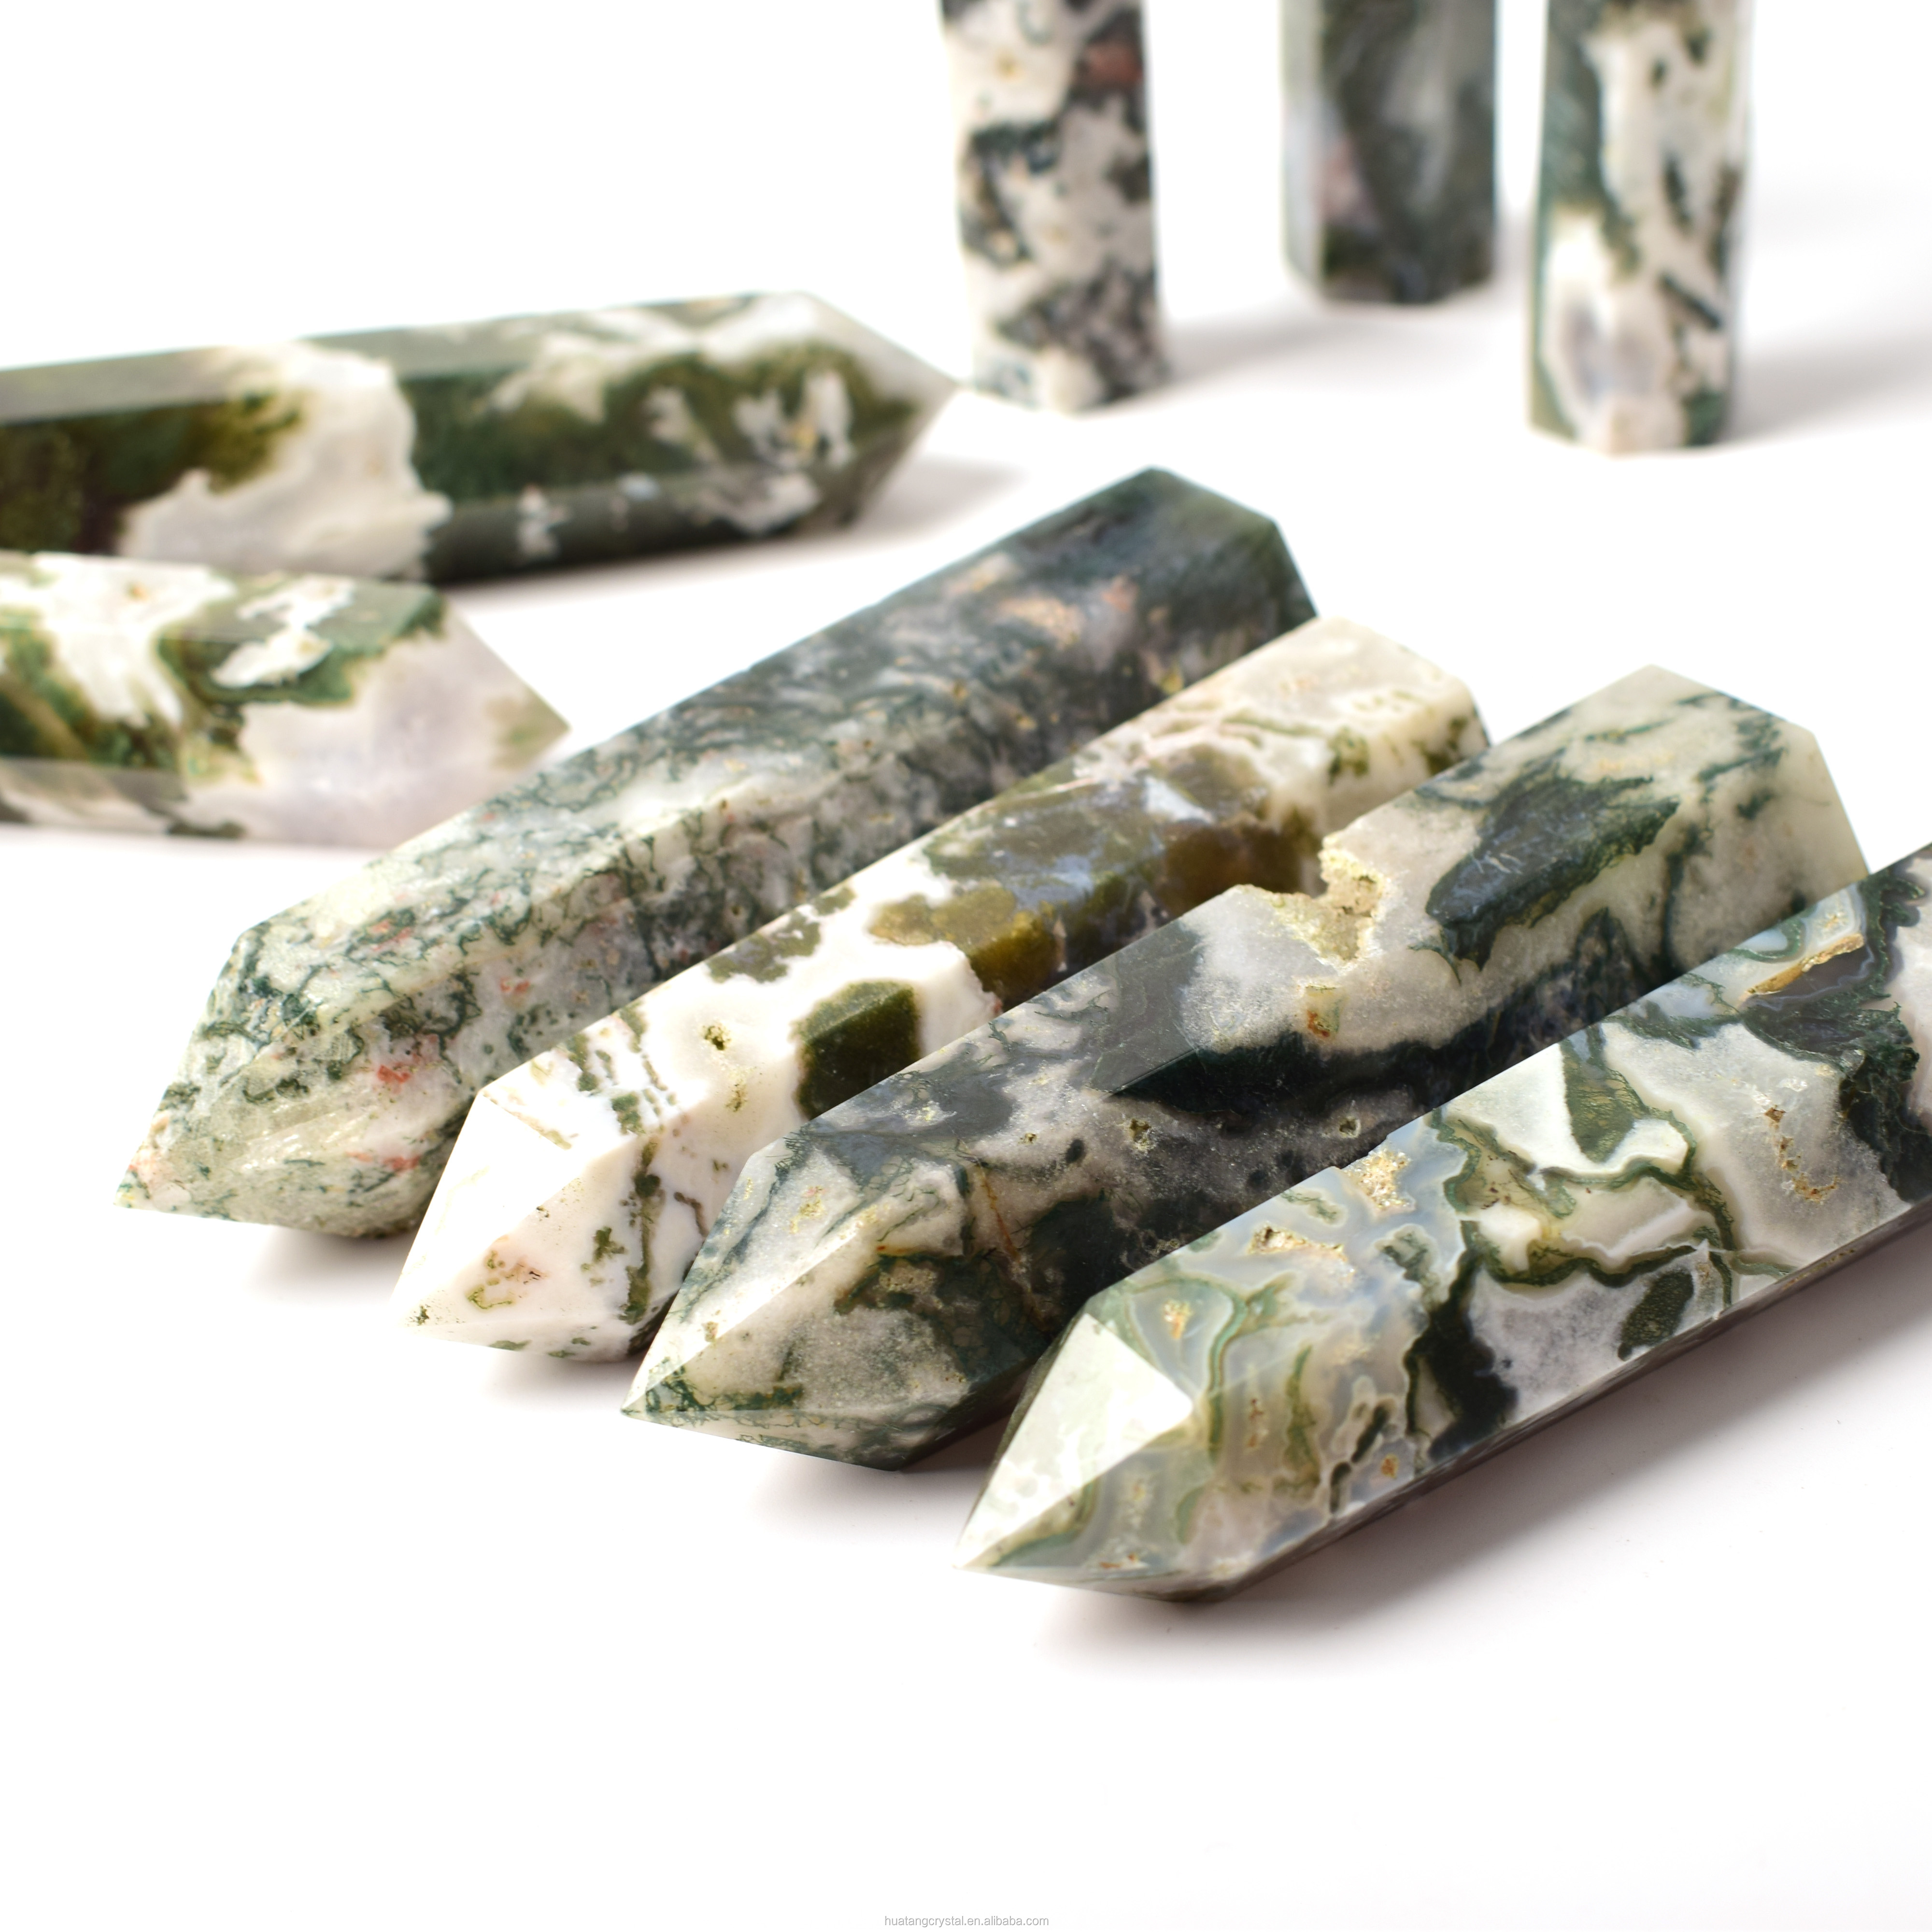 Wholesale Natural Agate Polishing Moss Agate <strong>Points</strong> For Healing